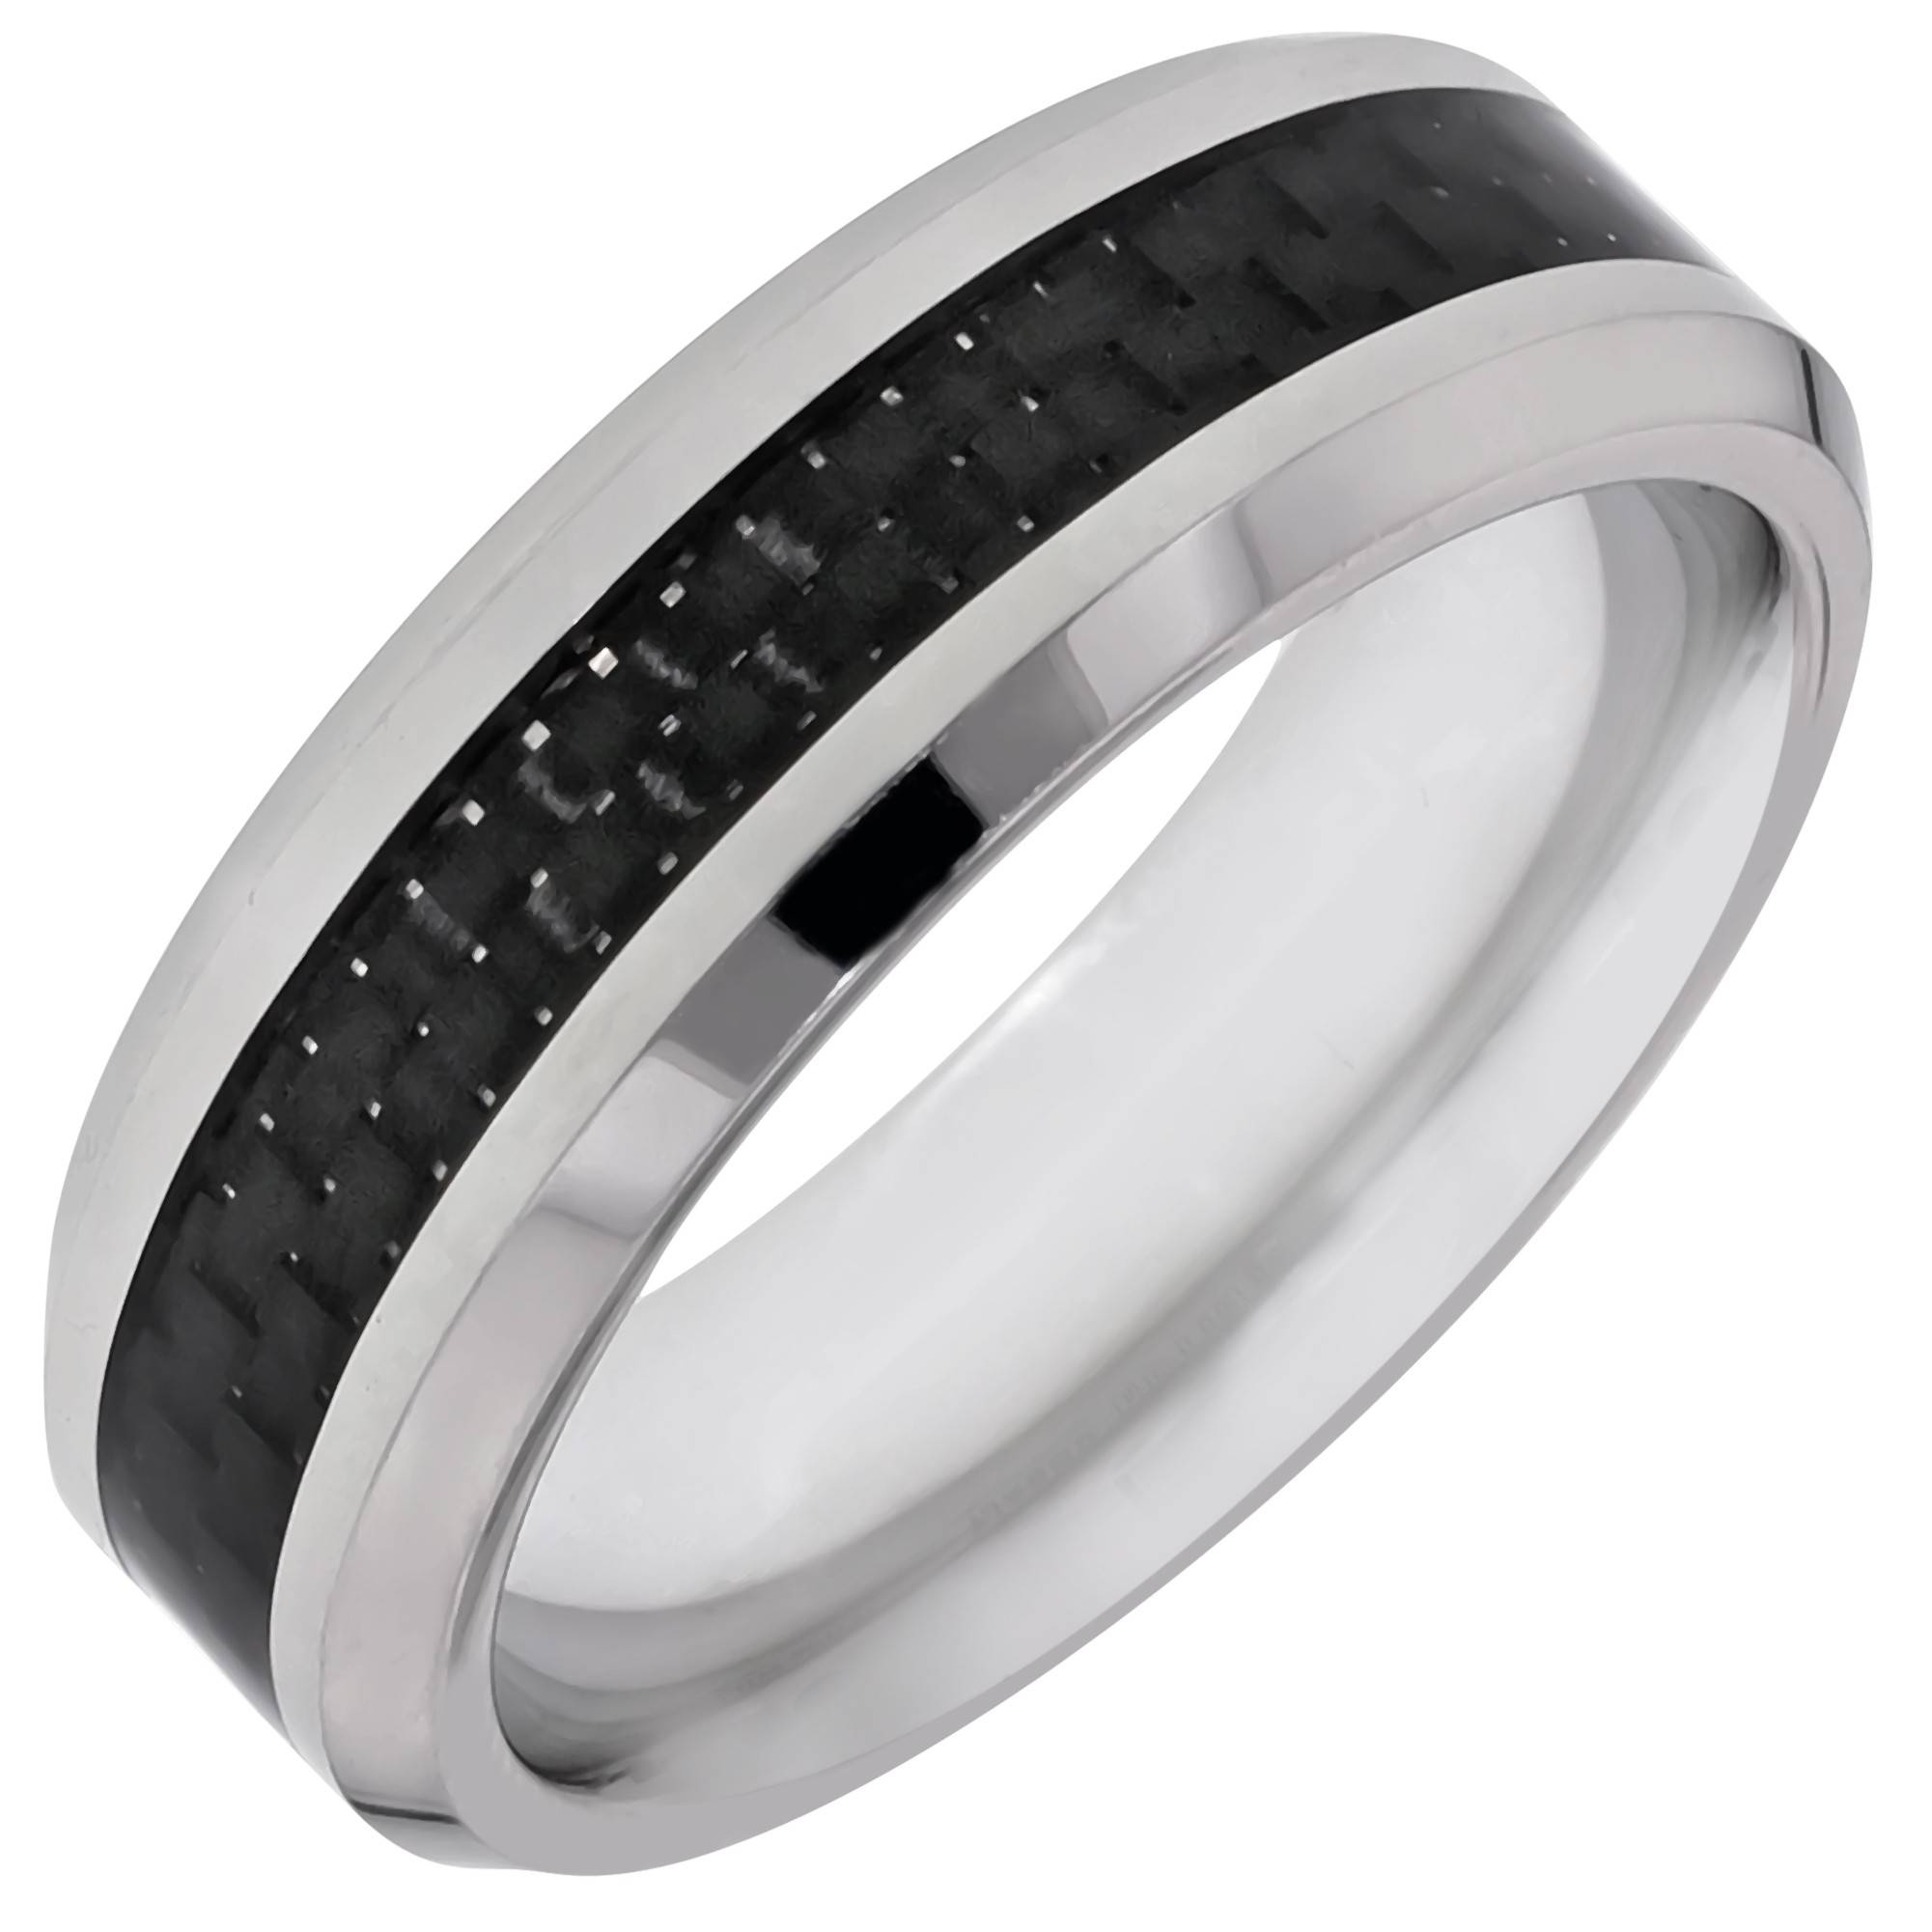 Mens Cobalt Chrome And Carbon Fiber Comfort Fit Wedding Band (7Mm) Regarding Mens Carbon Fiber Wedding Rings (View 9 of 15)